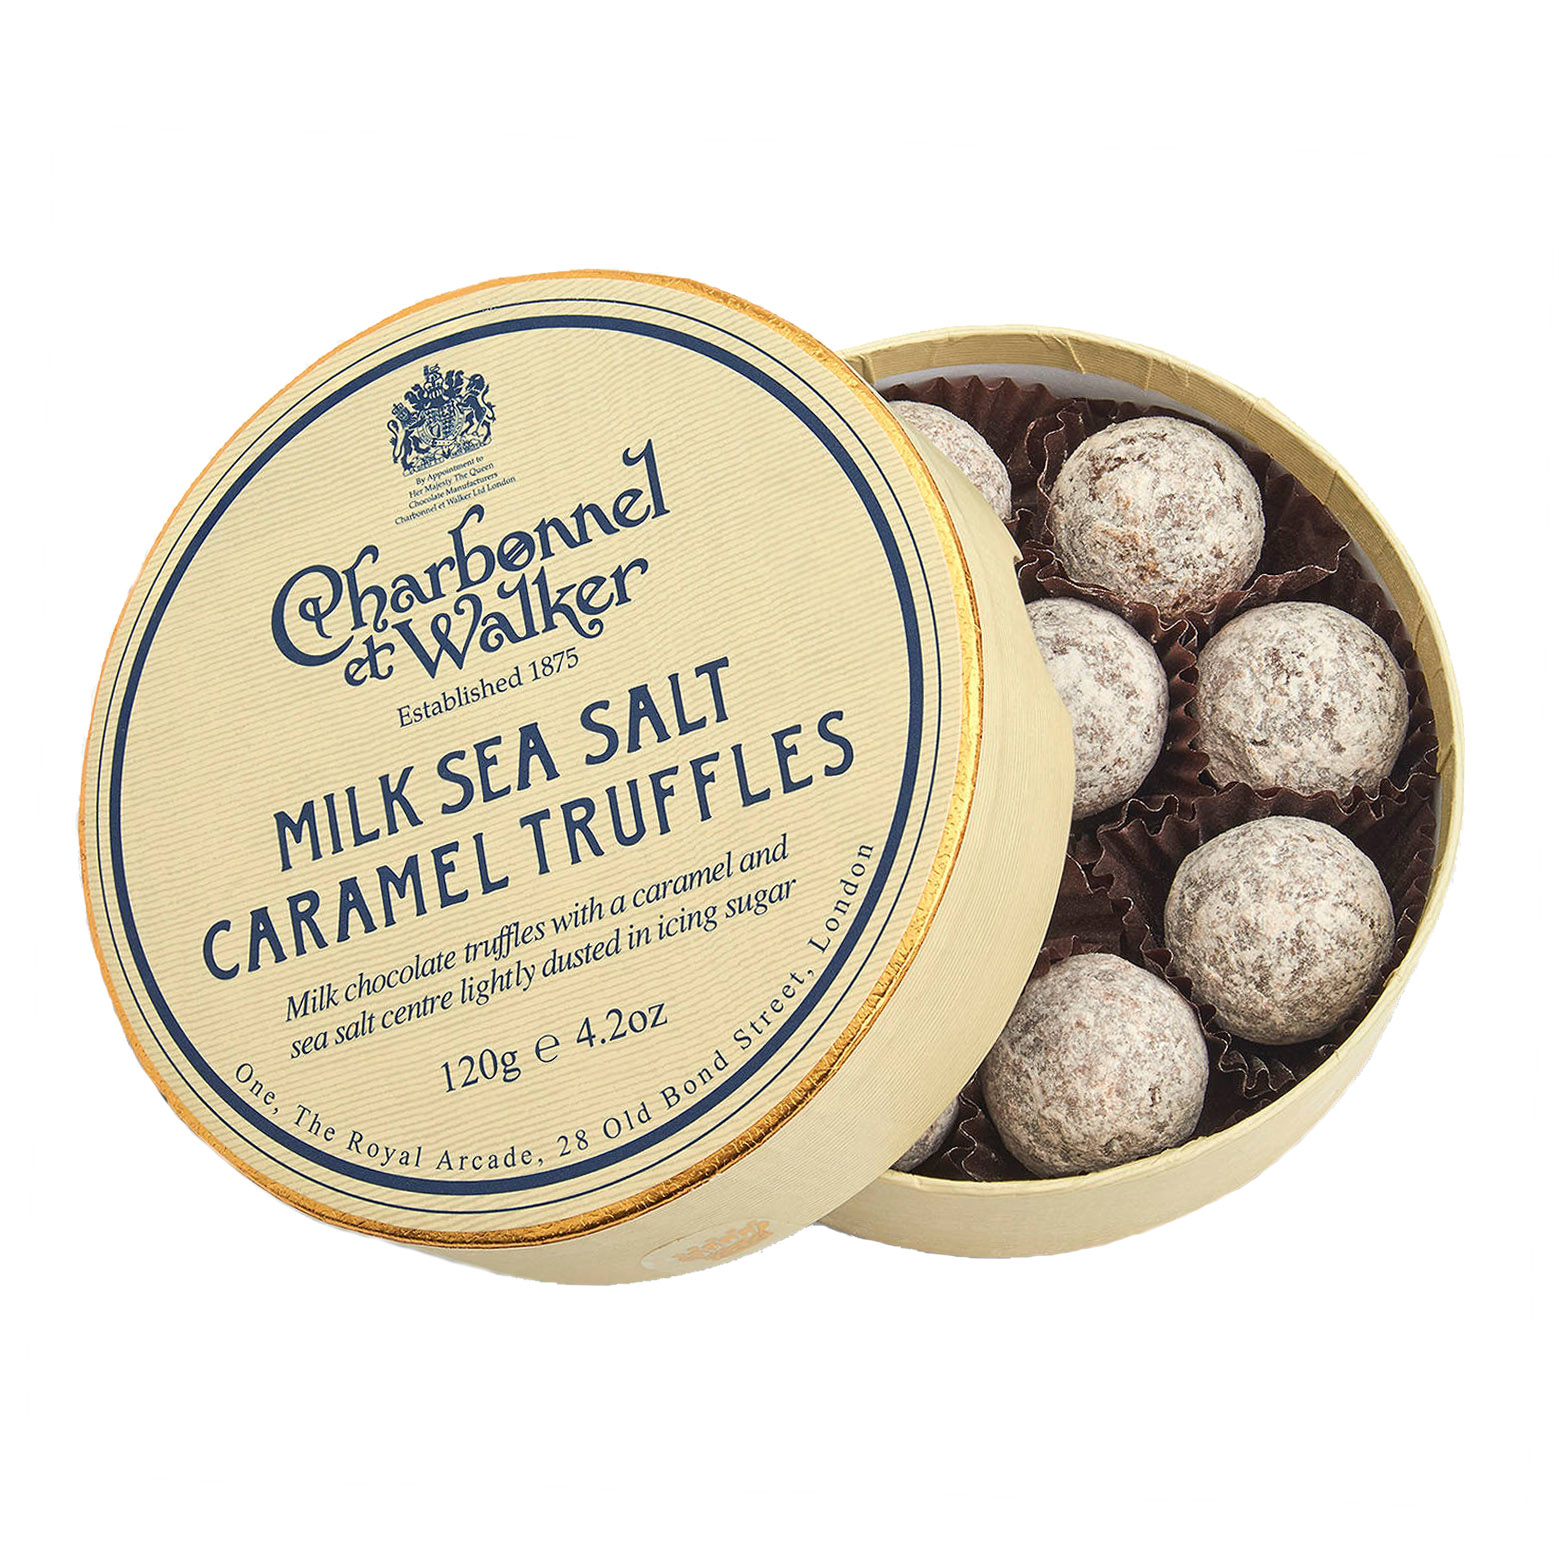 Charbonnel et Walker - Milk sea salt caramel truffles -